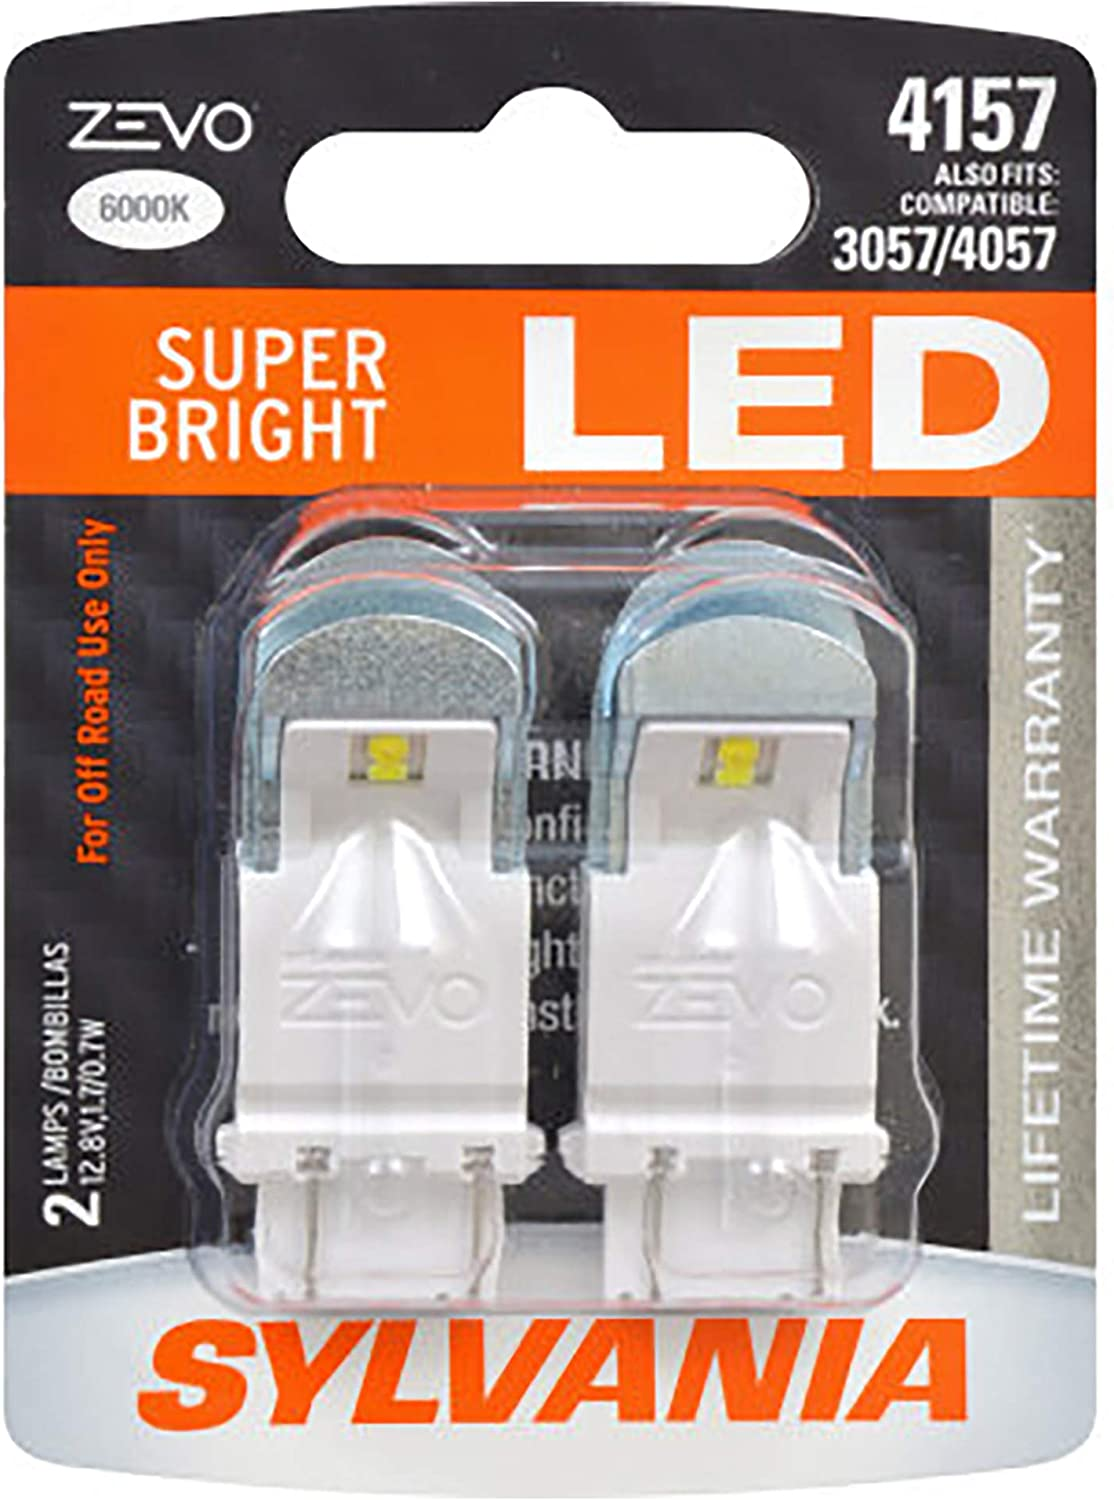 and Back-Up//Reverse Lights 3157 Long Life Miniature Ideal for Daytime Running Lights SYLVANIA DRL Contains 2 Bulbs Bulb